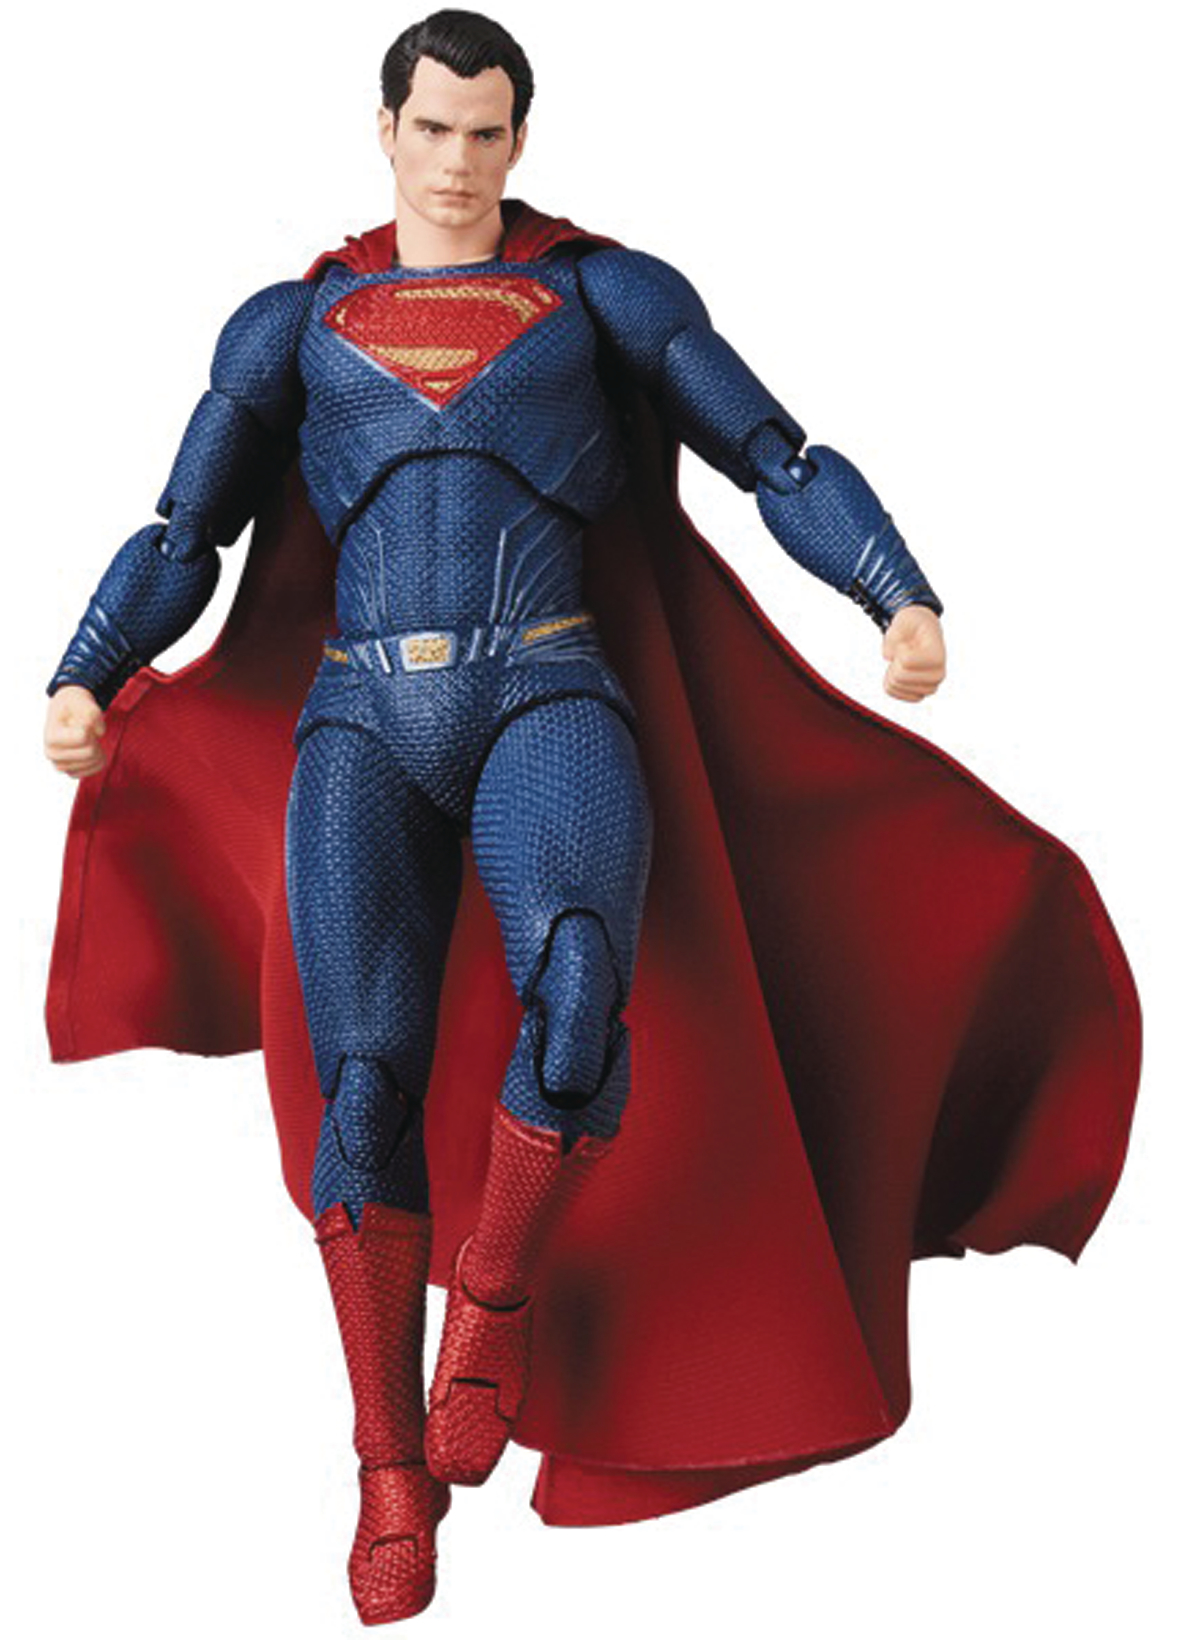 JUSTICE LEAGUE SUPERMAN MAF EX AF